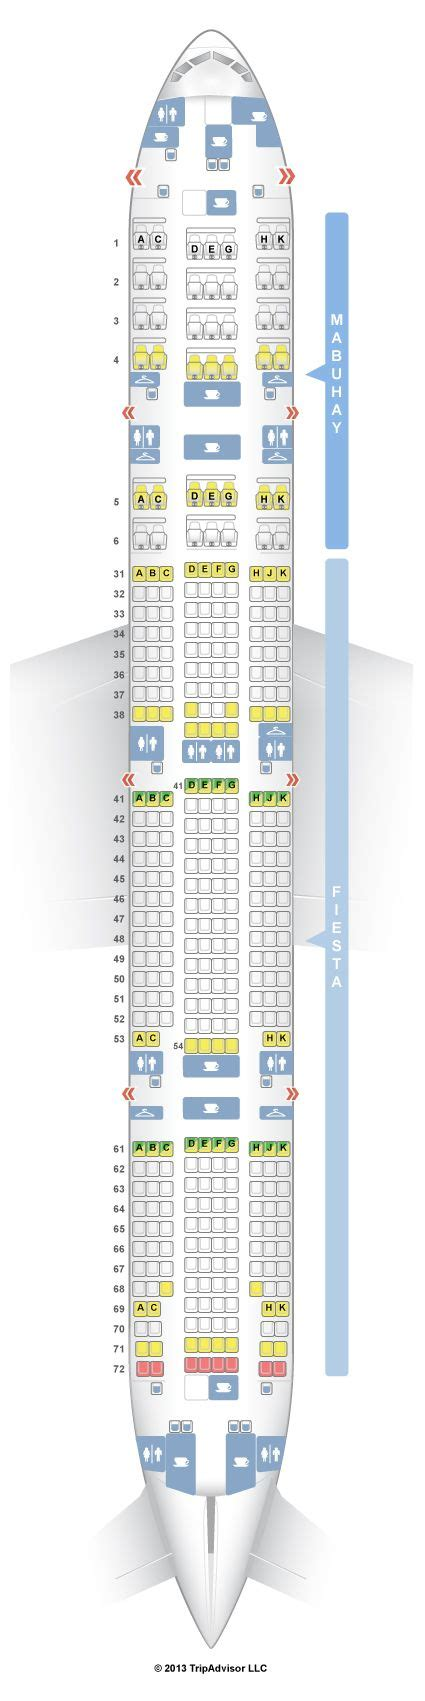 seating chart boeing 777 1000 ideas about boeing 777 300 seating on